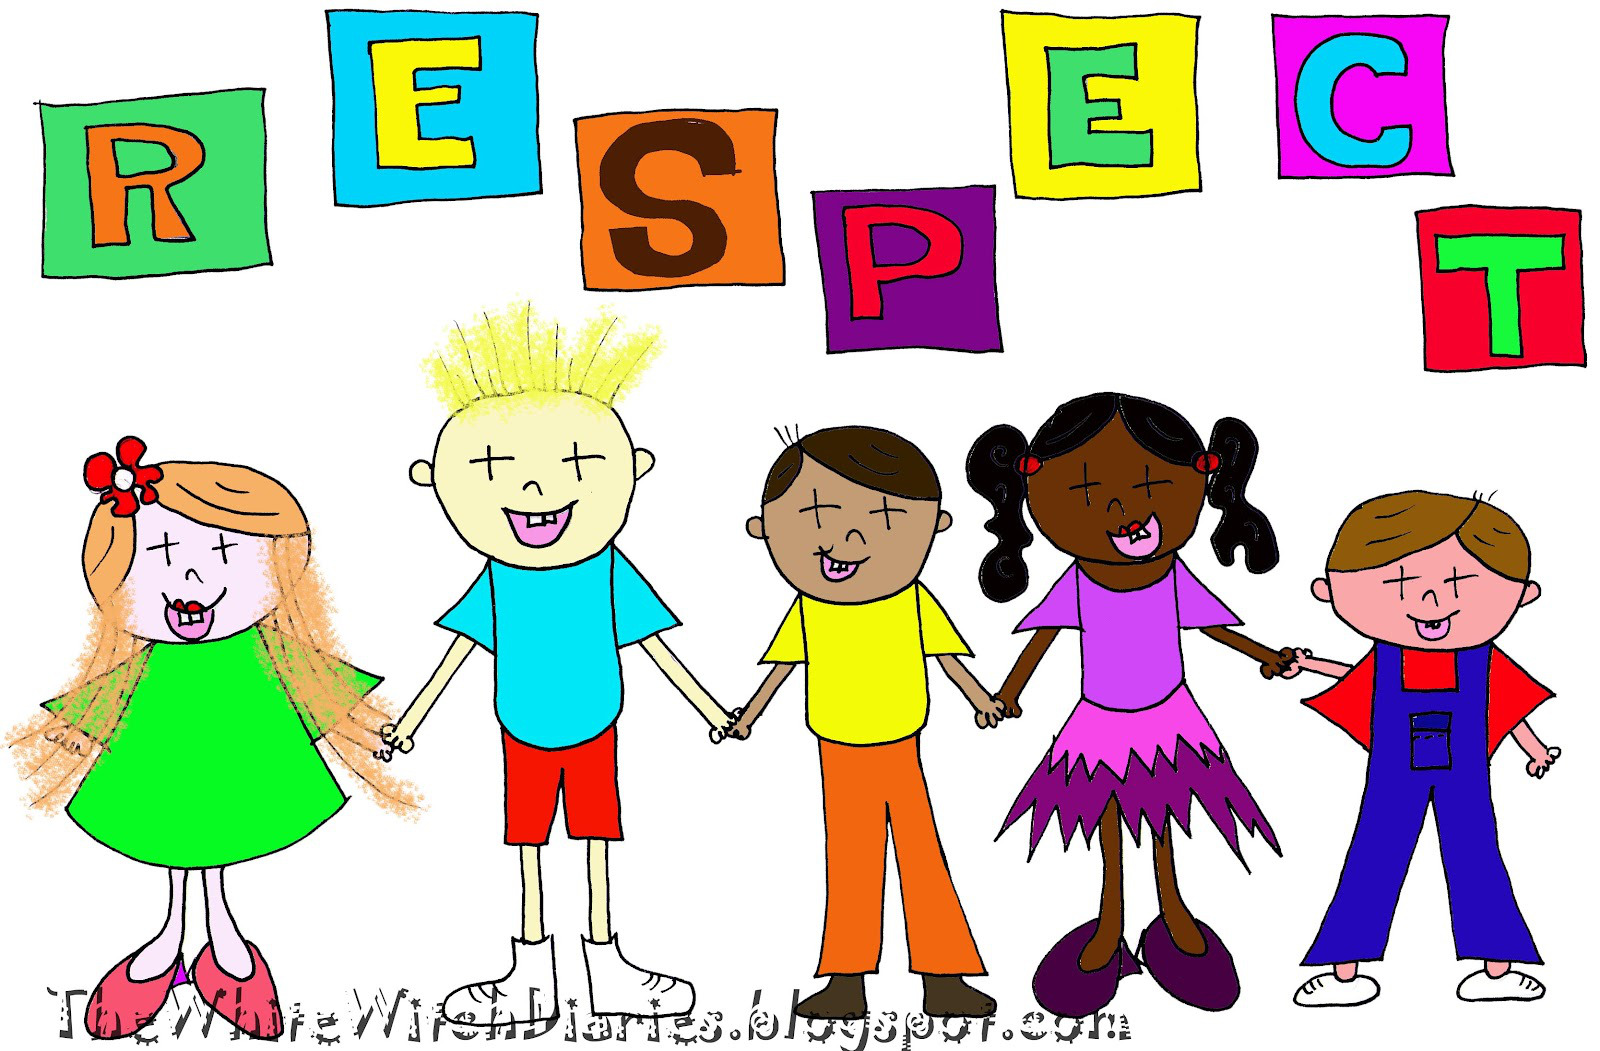 Children showing respect clipart clipart royalty free Showing respect clipart - ClipartFox clipart royalty free